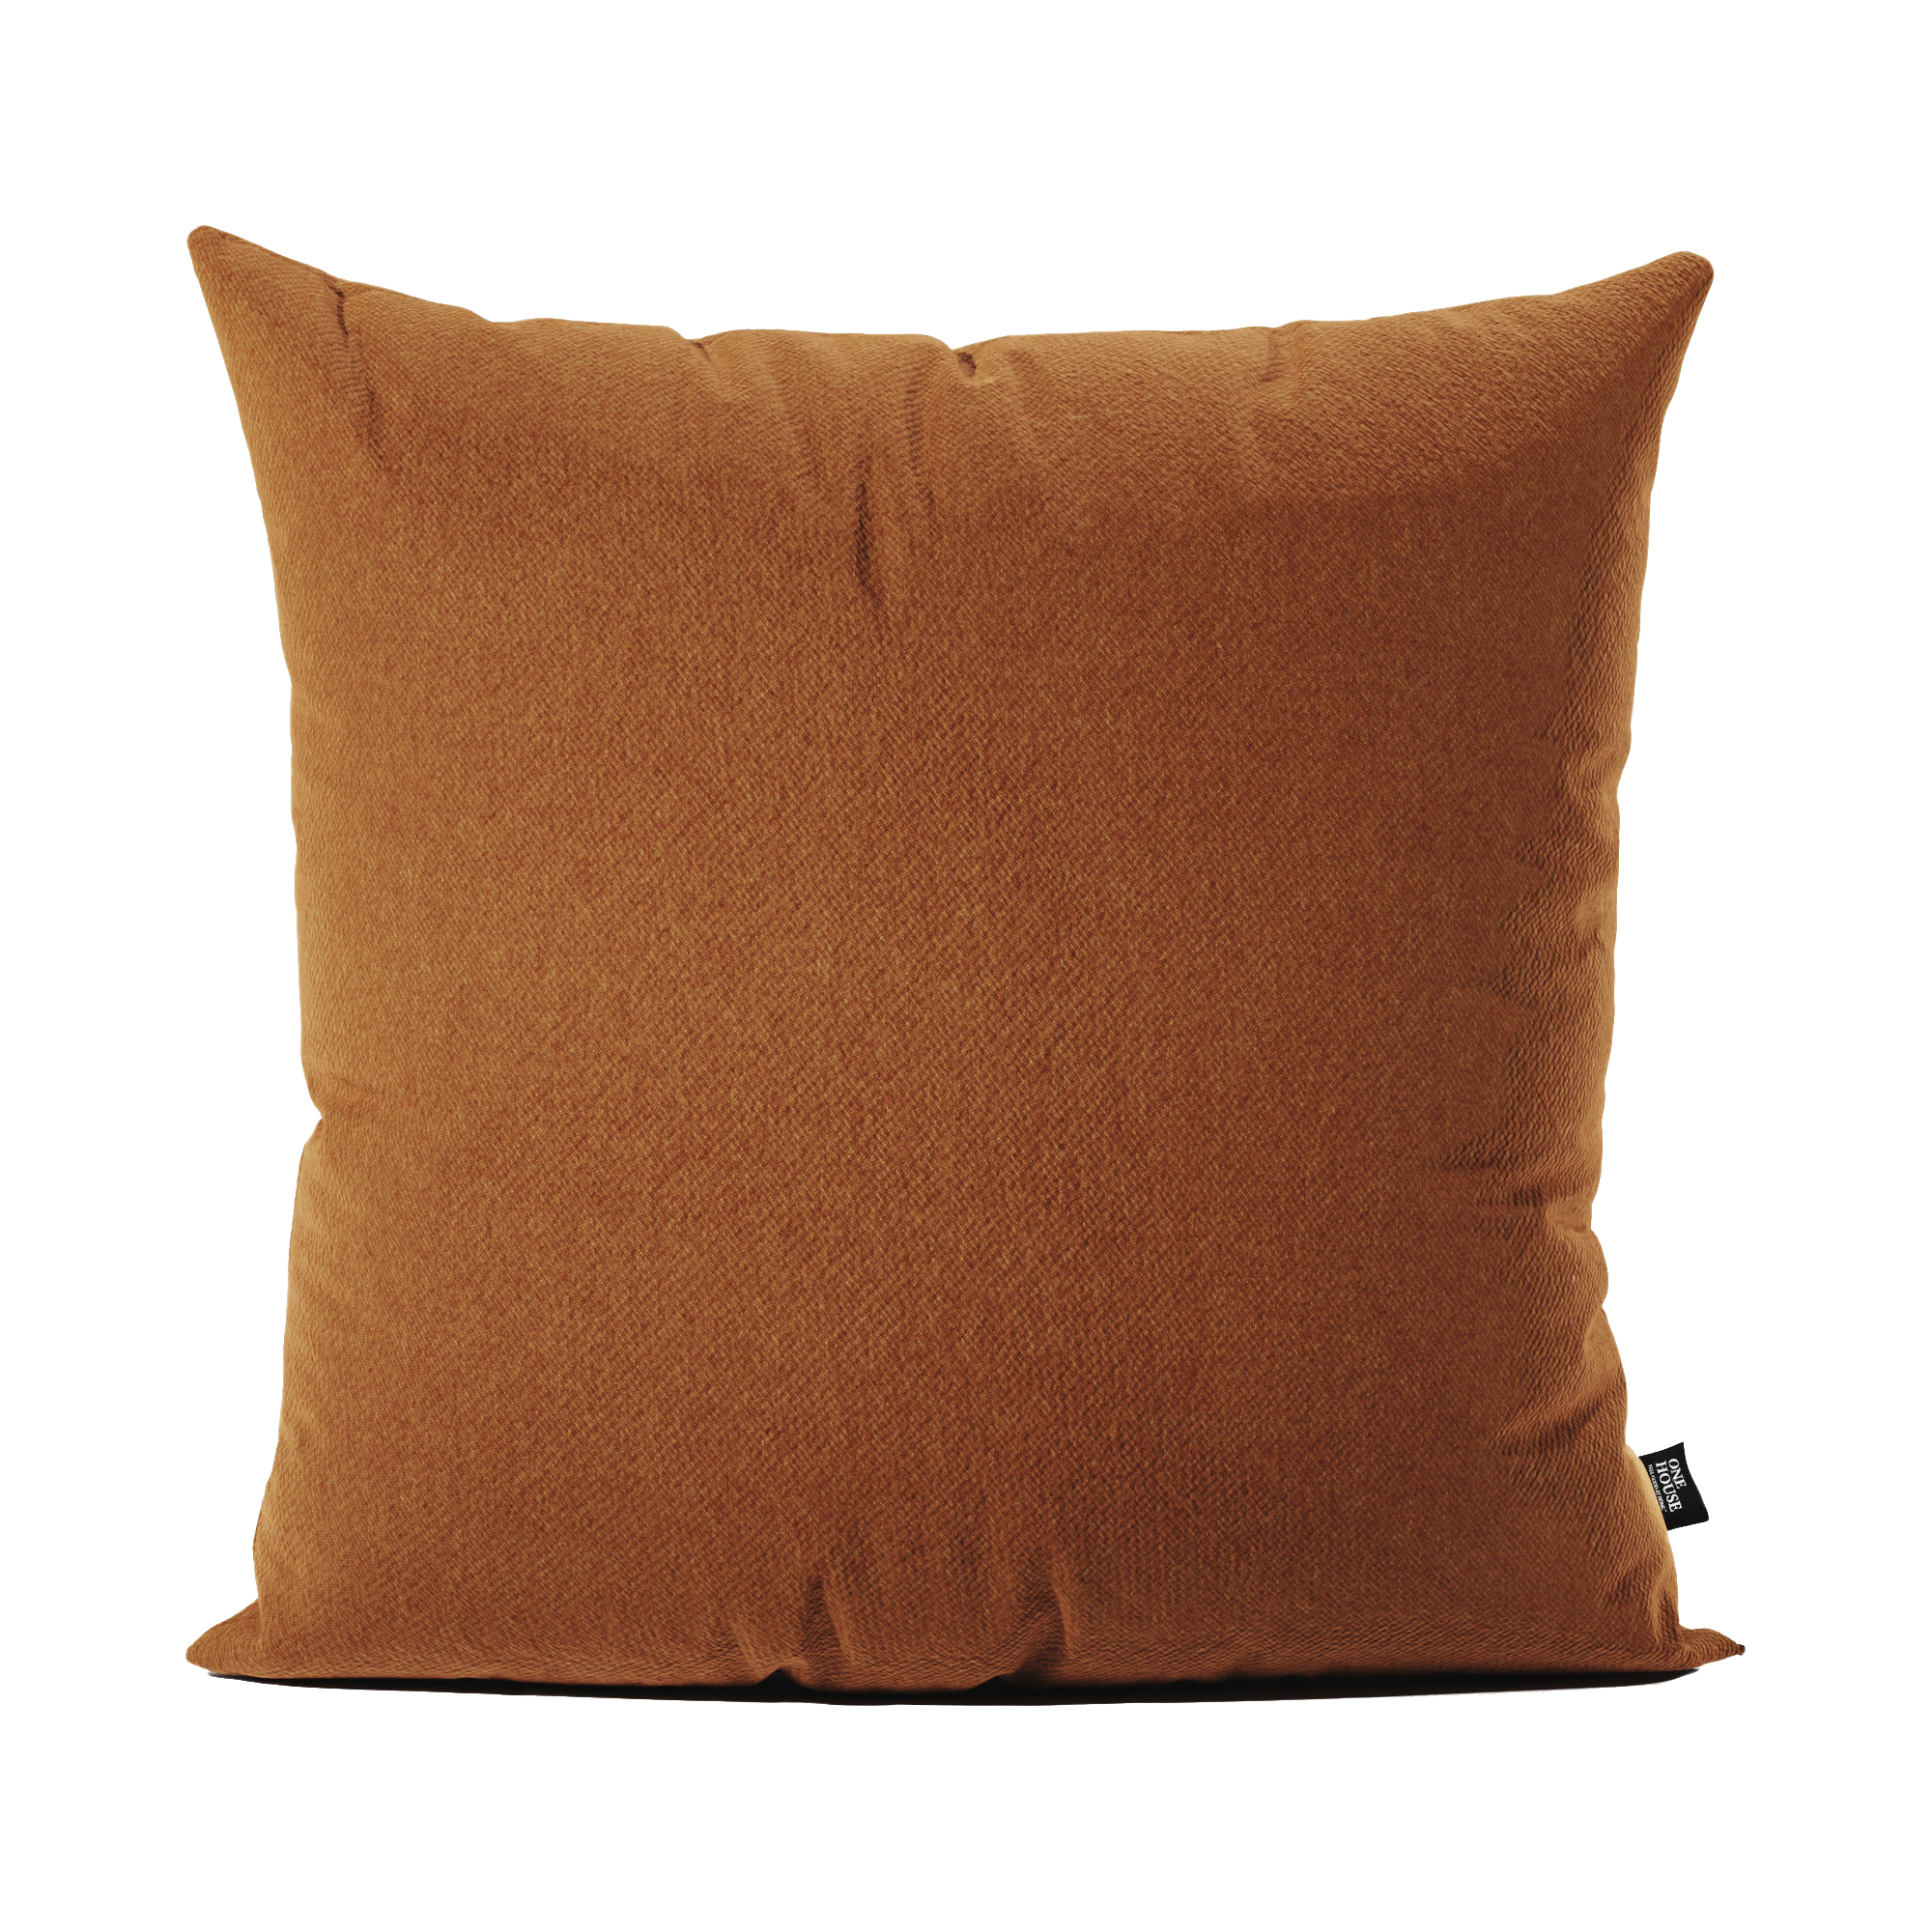 Tawny - Named after the Tawny port wines, this cushion mimics the color of red grapes and loosens up the environment with a relaxed vibe.